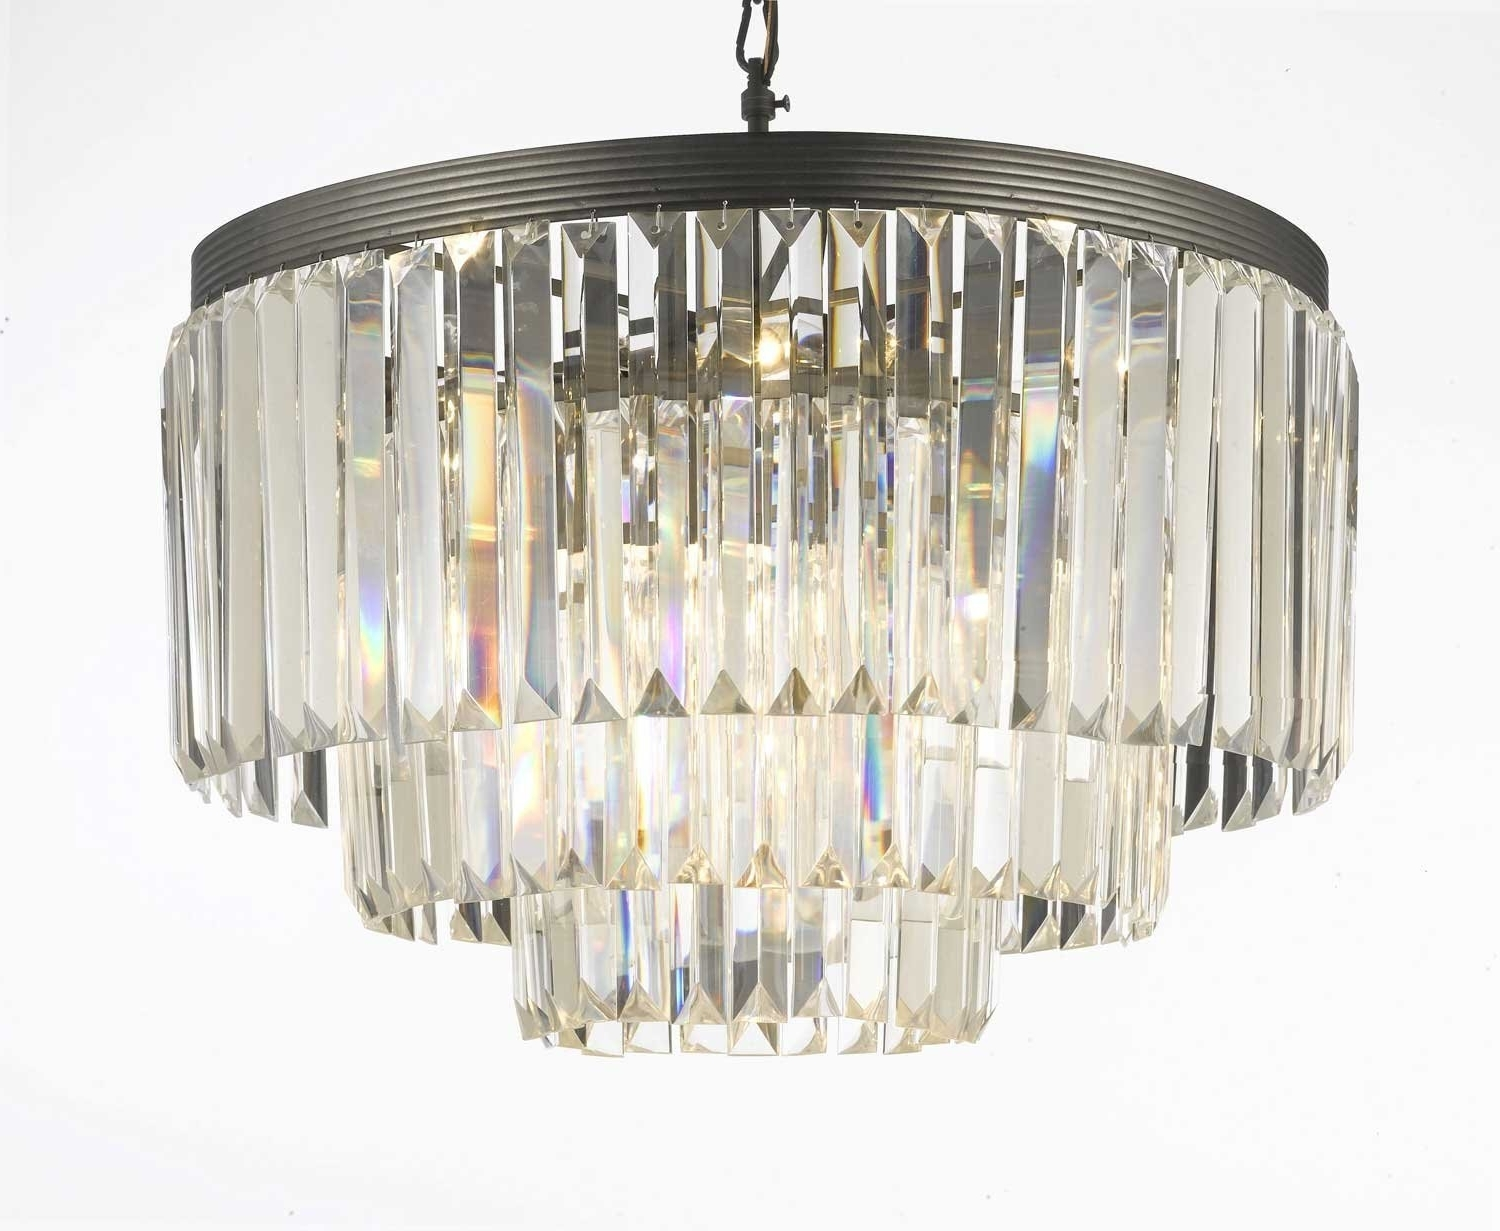 Fashionable 3 Tier Crystal Chandelier In Odeon Crystal Glass Fringe 3 Tier Chandelier Chandeliers Lighting (View 3 of 15)